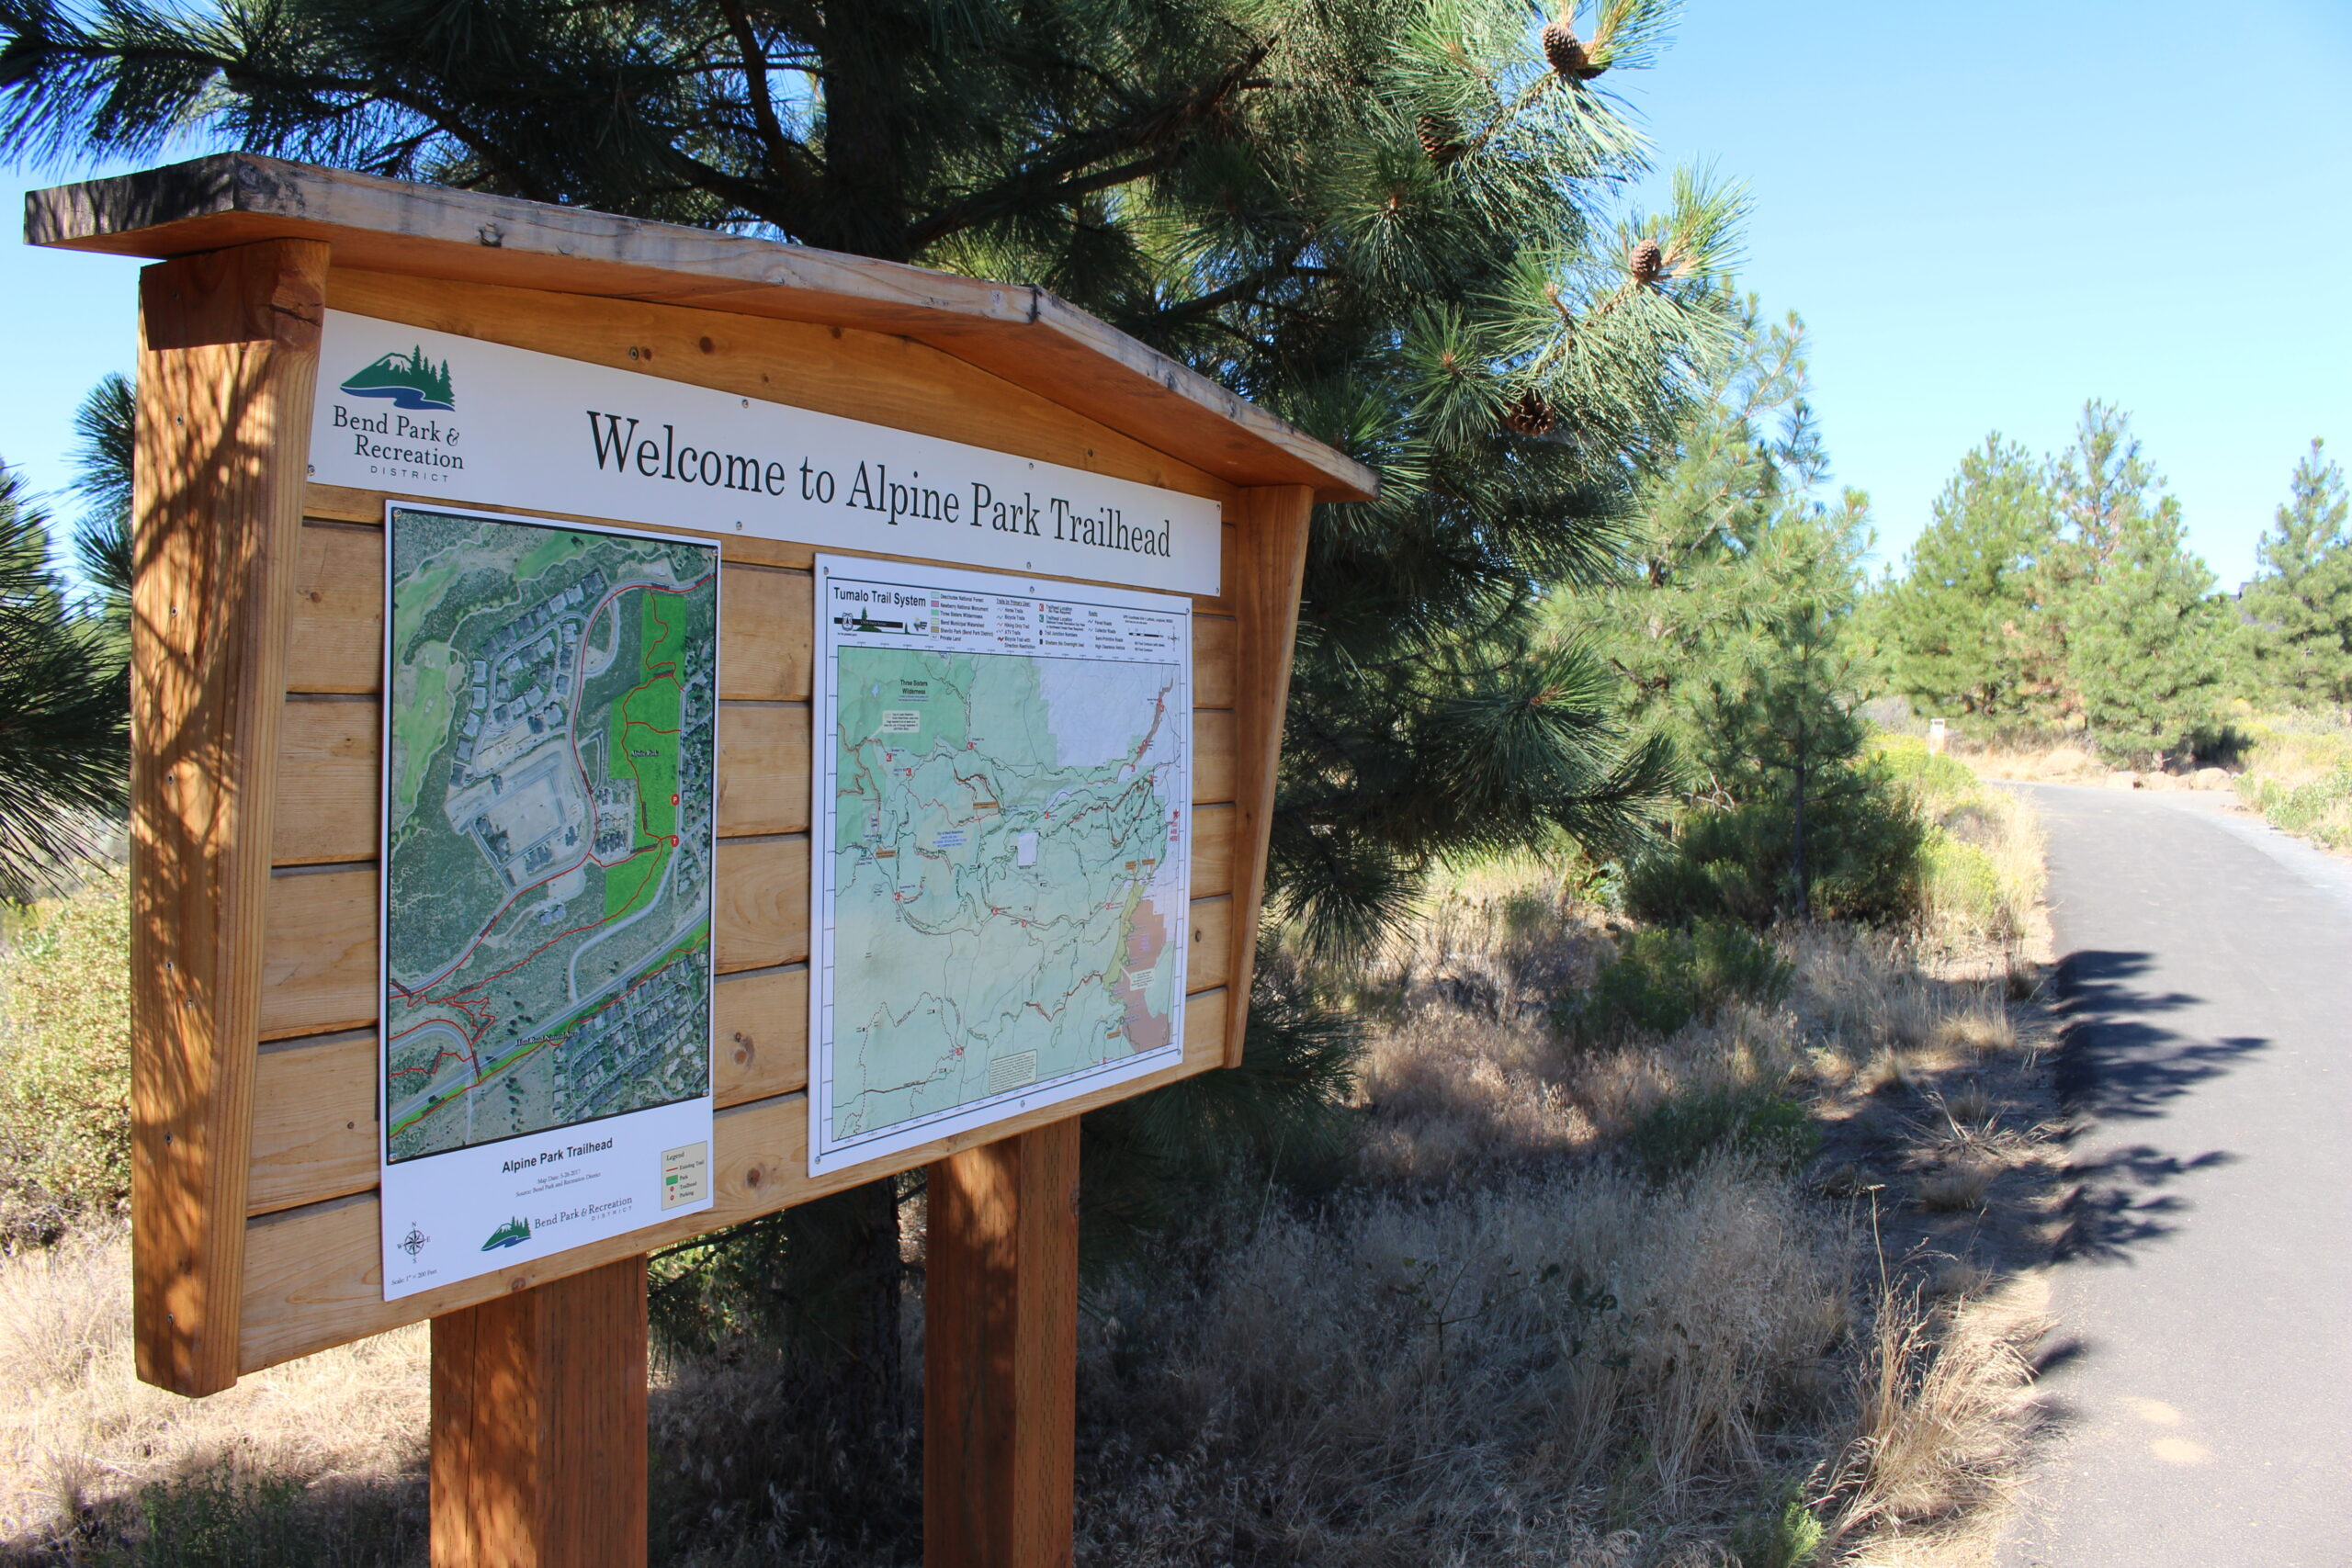 Alpine Park and Trail